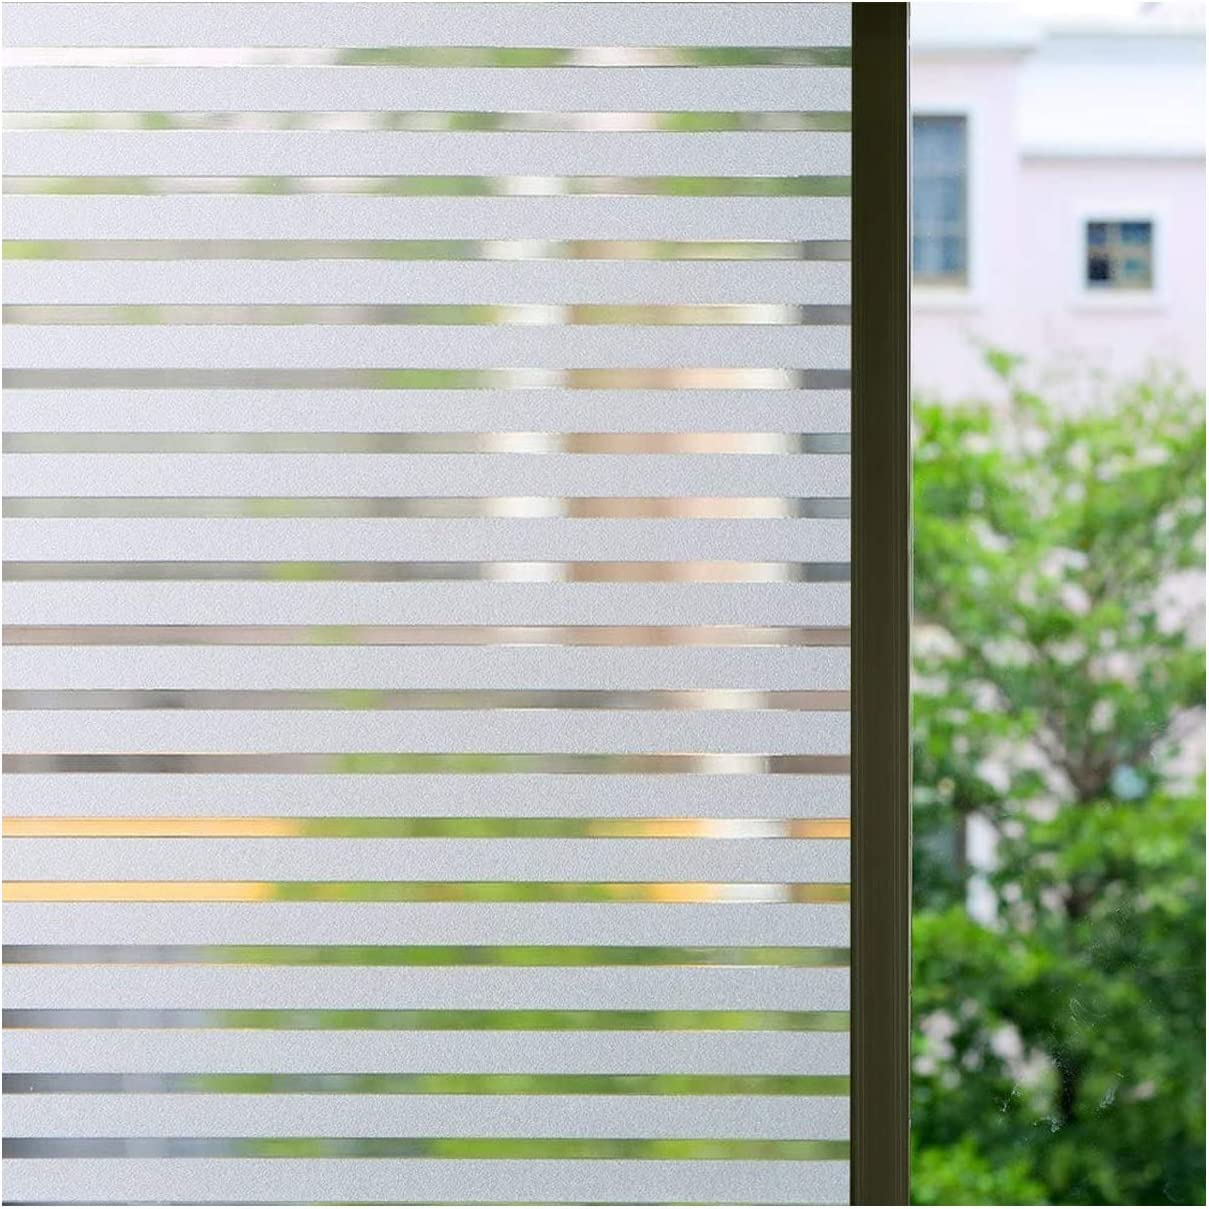 Bloss Privacy Window Film Office Decorative Window Cling Anti-UV Glass Film No-glue Window Decal For Home 17.7×78.7 inches